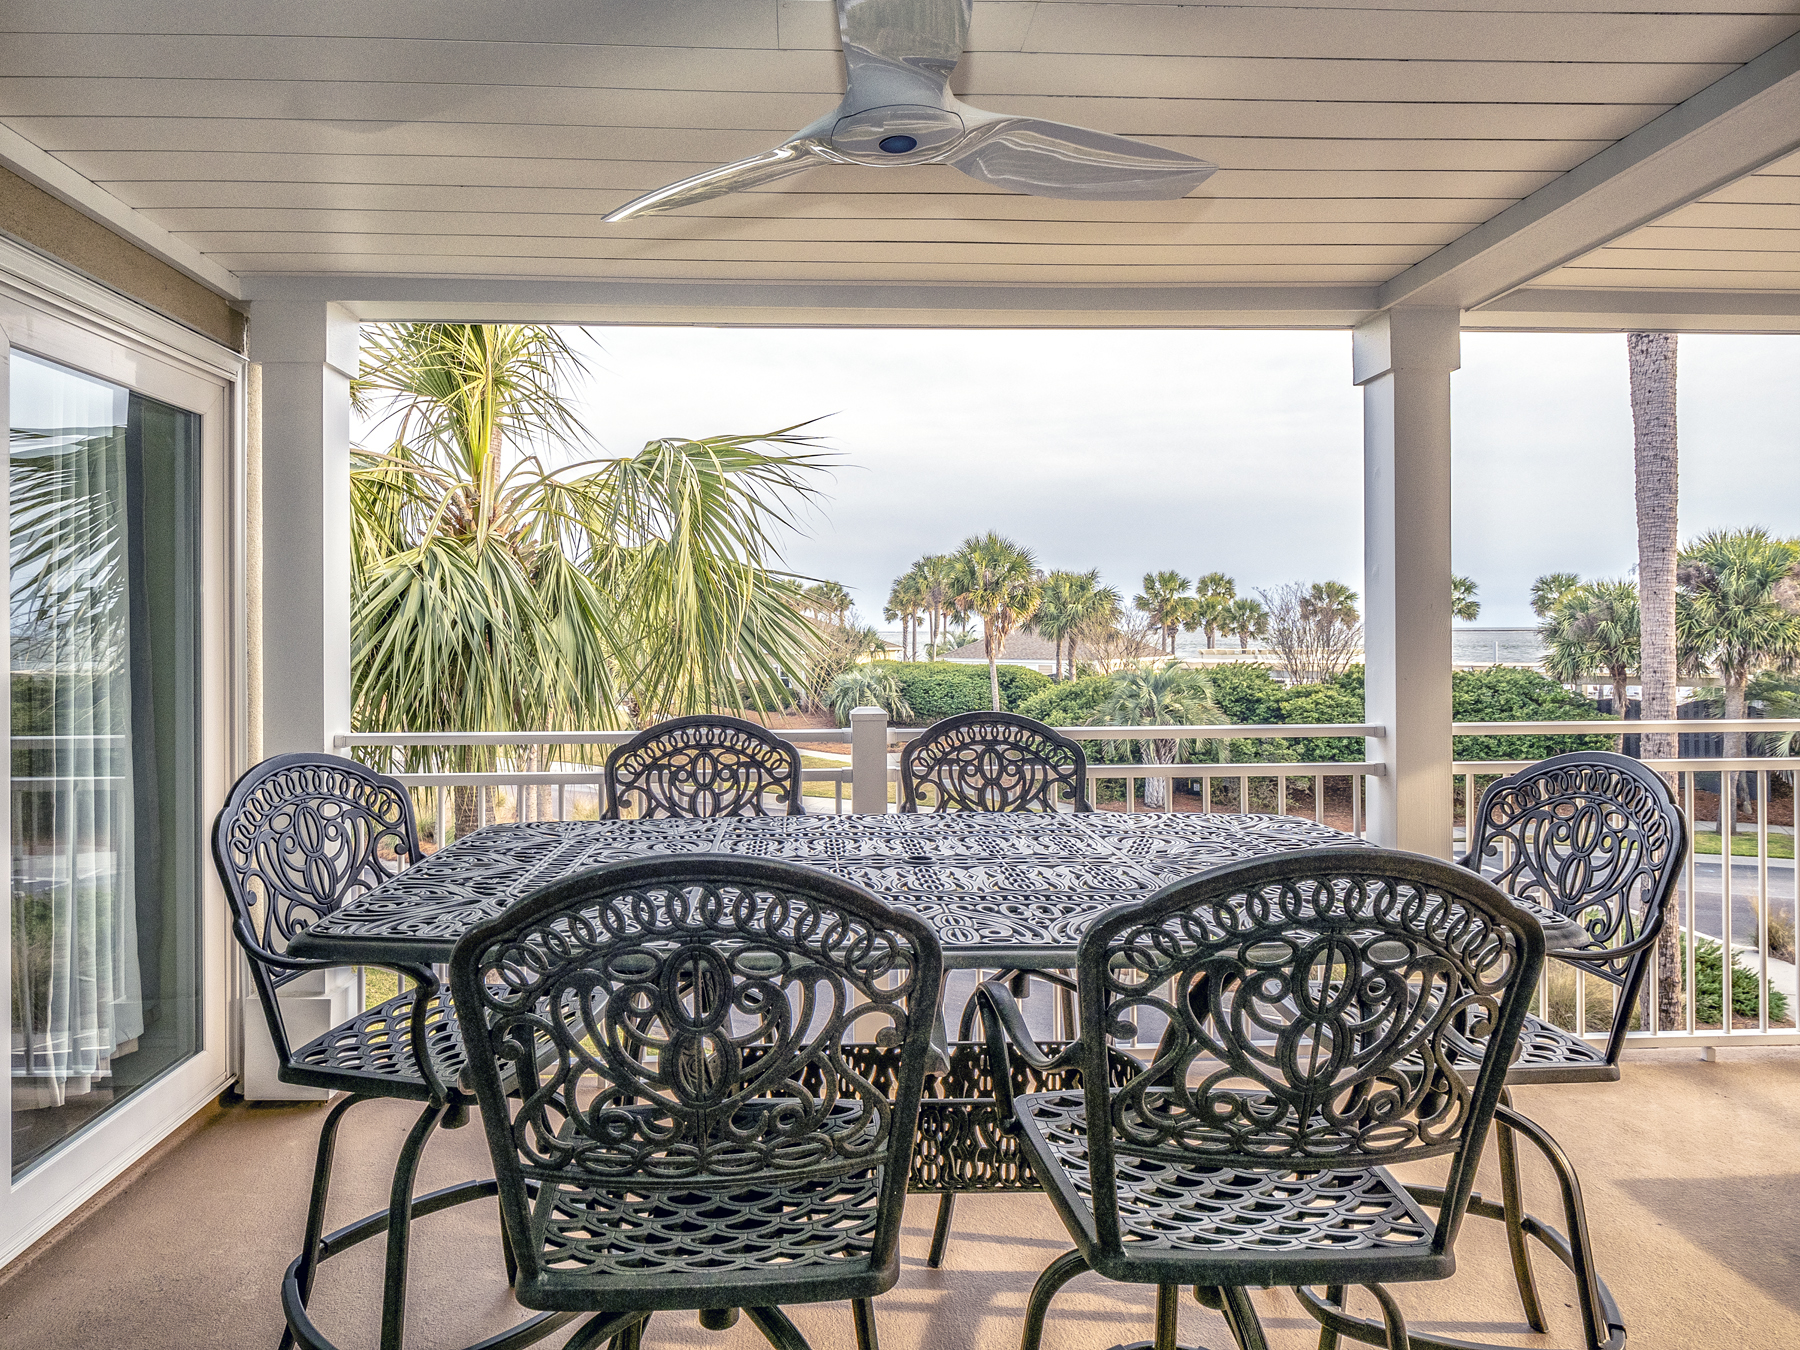 Outdoor dining with seating for 6